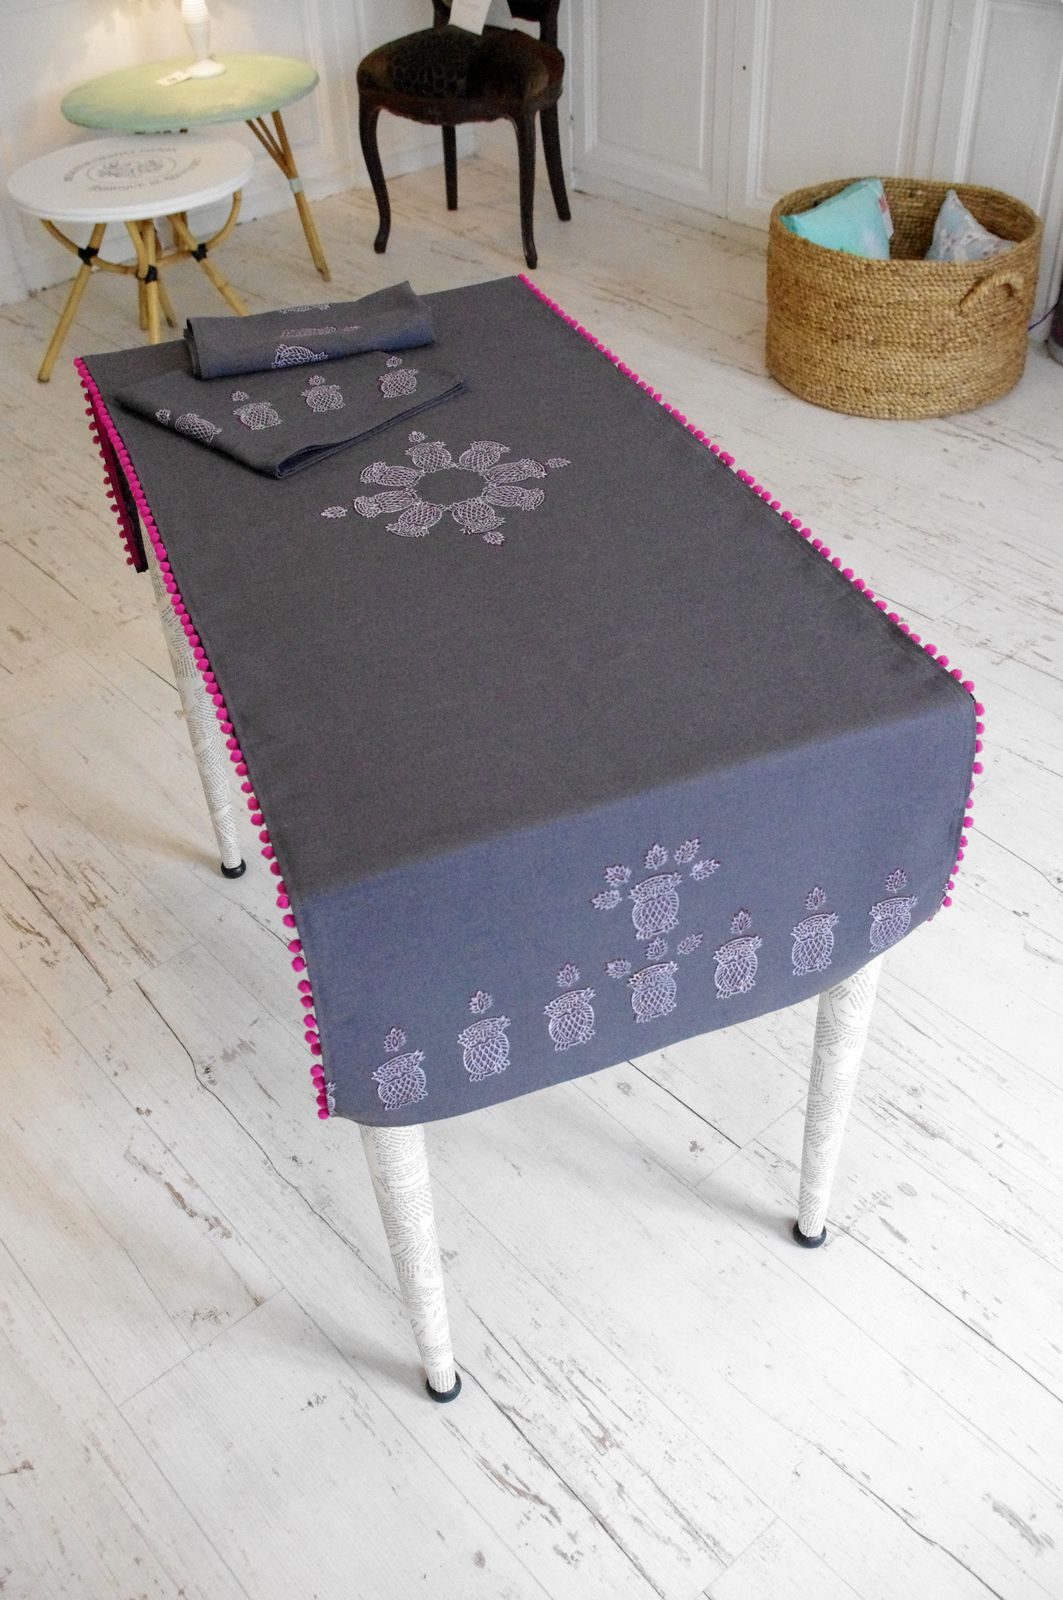 Chemin de table et serviettes gris anthracite et rose l for Chemin de table gris